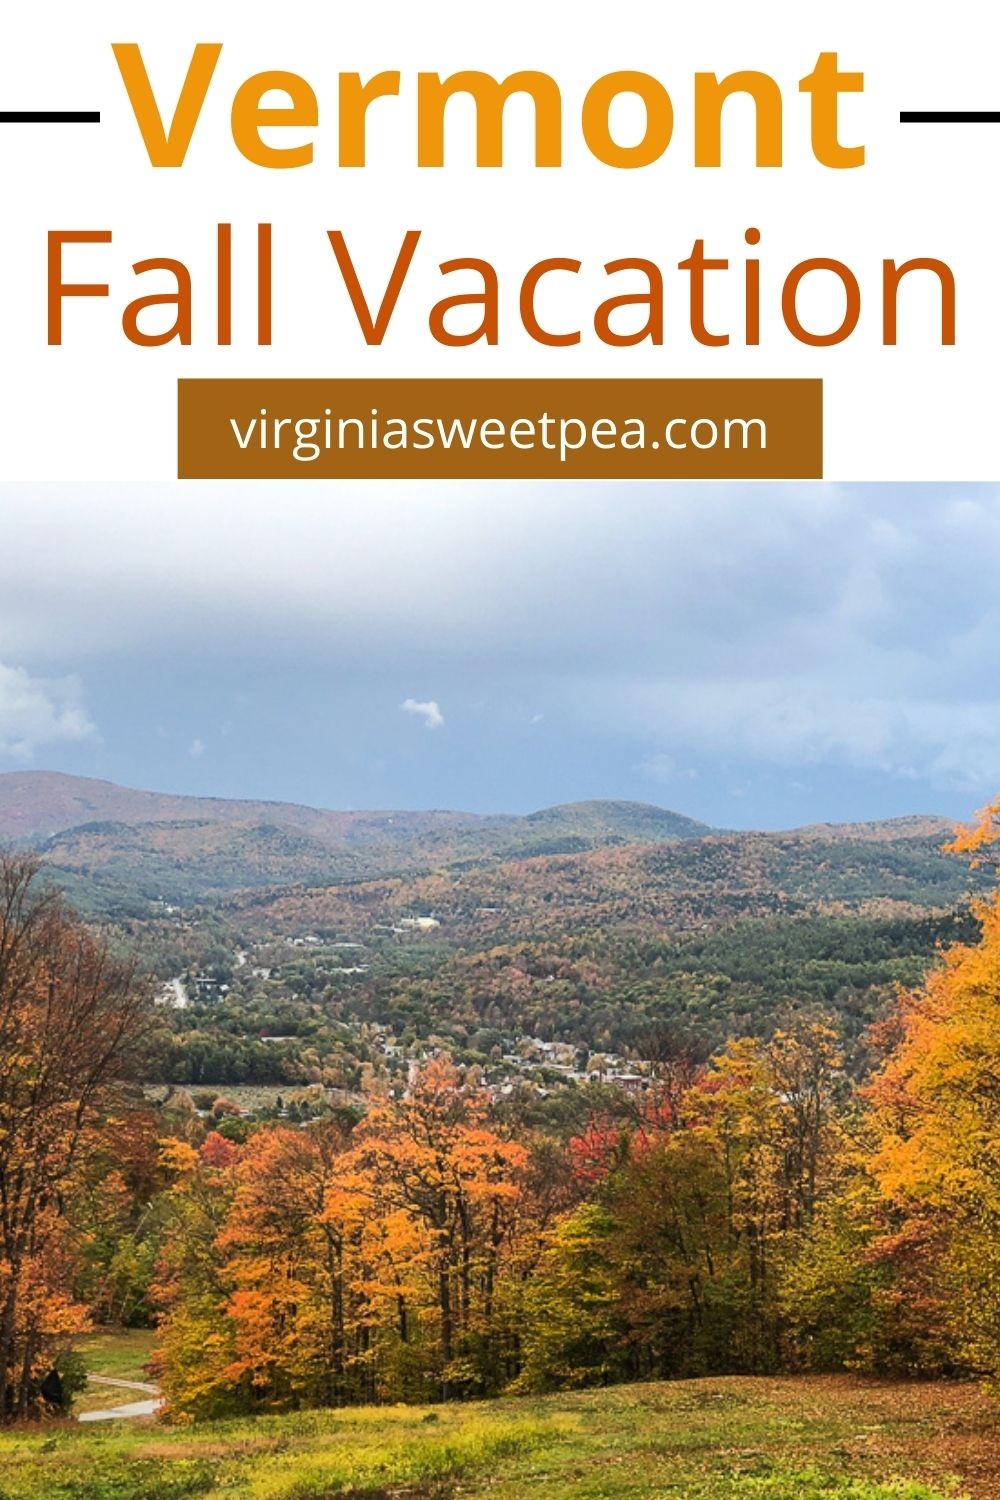 Vermont Fall Vacation - Tips for things to do and see in Woodstock, Vermont in fall. #woodstockvermont #fallinvermont via @spaula